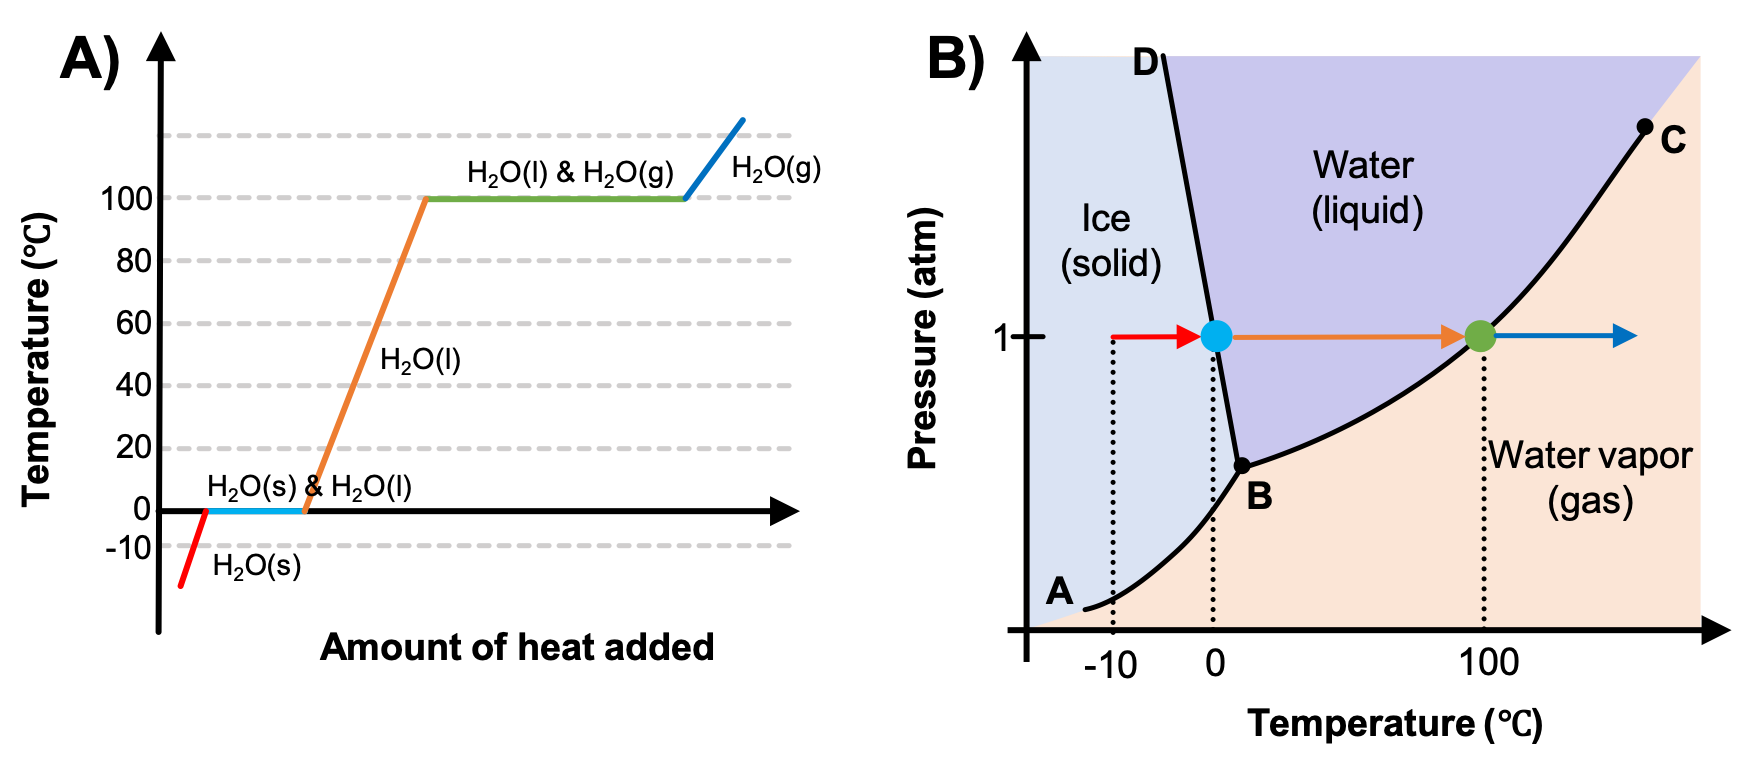 "This figure has a part ""A"" and ""B"". In part A, we see a heating curve for water. The Y axis is labeled ""Temperature (degrees Celsius)"" and the X axis is labeled ""Amount of heat added"". The data shows a red line that is labeled ""H2O(s)"" that start at -10 degrees celsius and increases to 0 degrees celsius. Then there is a light blue horizontal line that is labeled with ""H2O(s) & H2O(l)"" for the melting of ice. An orange line is labeled with ""H2O(l)"" as the liquid water is heated from 0 degrees to 100 degrees. A green horizontal line is labeled with ""H2O(l) & H2O(g)"" and represents the boiling of water. A dark blue line is labeled with ""H2O(g)"" and represents the temperature change of the gas after all the liquid has been vaporized. In part B of the figure, there is a phase diagram with the Y axis labeled ""Pressure (atm)"" and the X axis labeled ""Temperature (degrees Celsius)"". The typical phase diagram for water is shown. A line extends from the origin of the graph which is labeled ""A"" sharply upward to a point in the bottom third of the diagram labeled ""B"" where it branches into a line that slants slightly backward until it hits the highest point on the y-axis labeled ""D"" and a second line that extends to the upper right corner of the graph labeled ""C"". The two lines bisect the graph area to create three sections, labeled ""Ice (solid)"" near the middle left, ""Water (liquid)"" in the top middle and ""Water vapor (gas)"" near the bottom middle. A red arrow starts at the point (-10, 1) and points right toward increasing temperature. A dotted line extends downward to the x axis to indicate that it starts at -10 degrees celsius. This red arrow corresponds to the heating of the ice in part A of the figure which was also colored red. The arrow ends at the line that separates the solid and liquid. On the line between solid and liquid, there is a light blue dot that corresponds to the light blue dot on the heating curve as the ice melts. There is a dotted line that extends downward to 0 degrees from the light blue point. During this melting process, there is no arrow because the temperature remains constant. Then an orange arrow begins at 0 degrees and extends to the right until the phase boundary between liquid and gas. A green point is on this line, with a dotted line that extends to the x axis that shows that it exists at 100 degrees. This is the vaporization of the liquid and no temperature change occurs at this point. Then a dark blue arrow points to the right to indicate heating of the gas. The colors of the arrows and points correlate between the heating curve in part A and the phase diagram in part B."